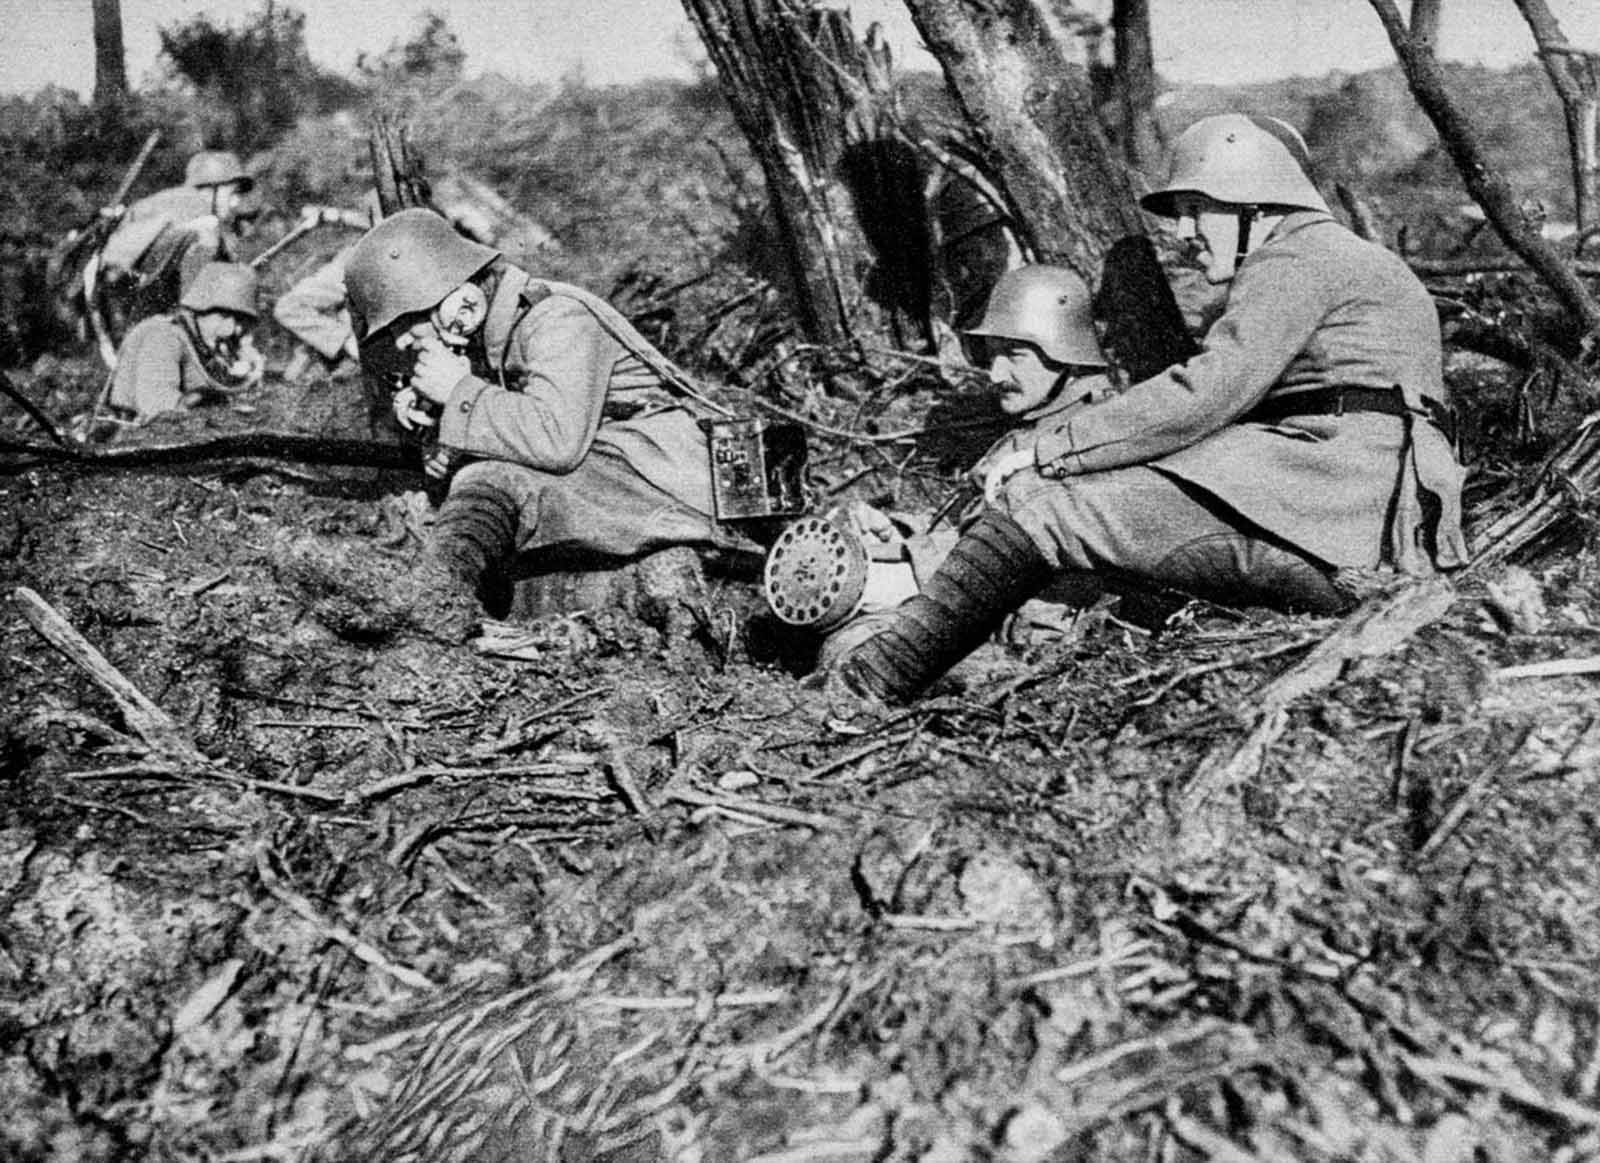 A German field telephonist relays artillery requests from the front lines.